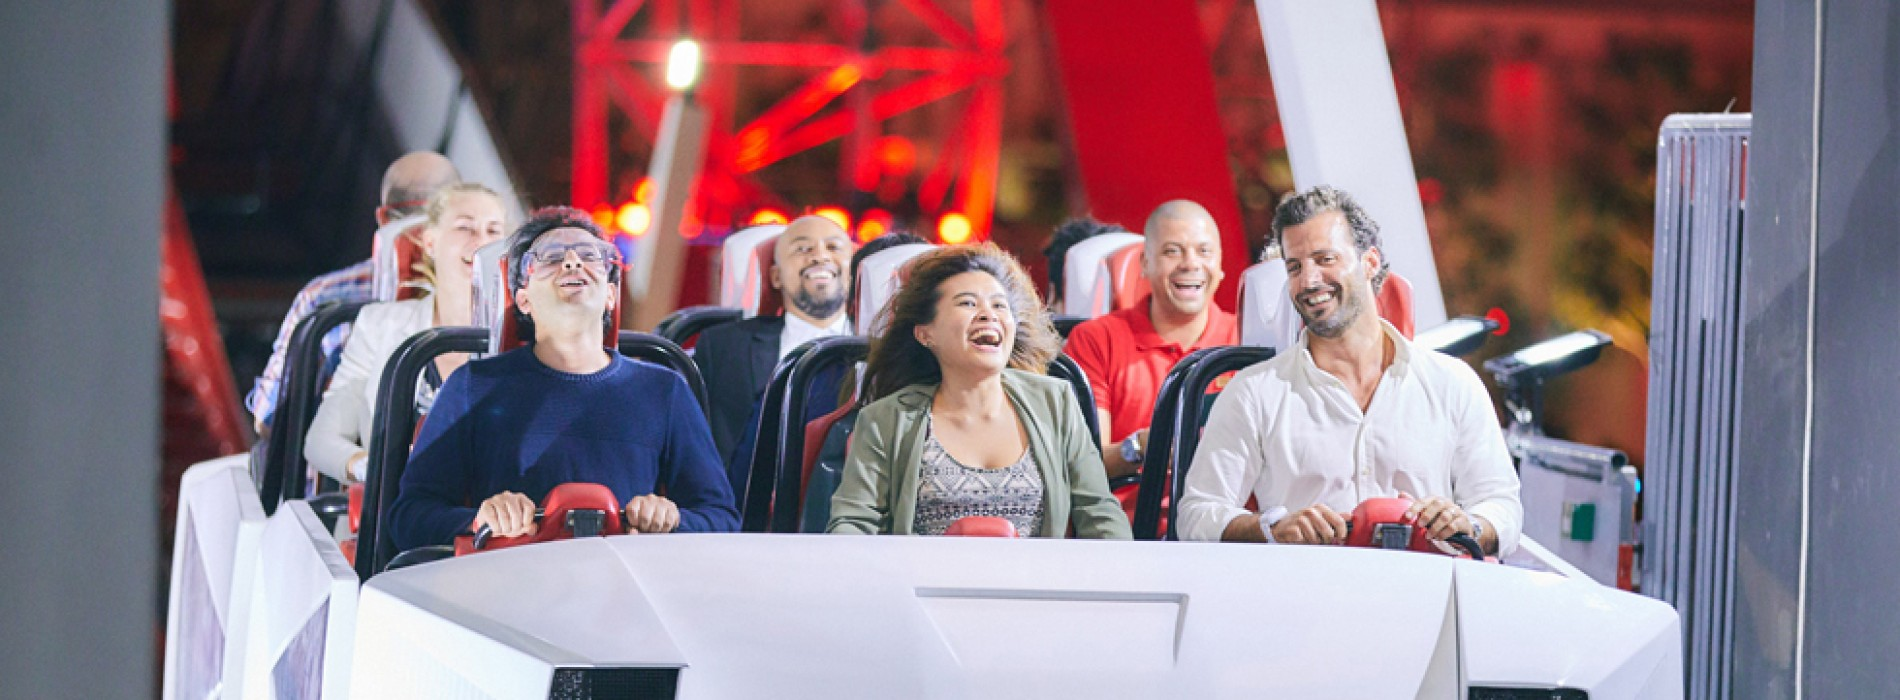 "Ferrari World Abu Dhabi Officially Opens its Latest Rollercoaster ""Turbo Track"""